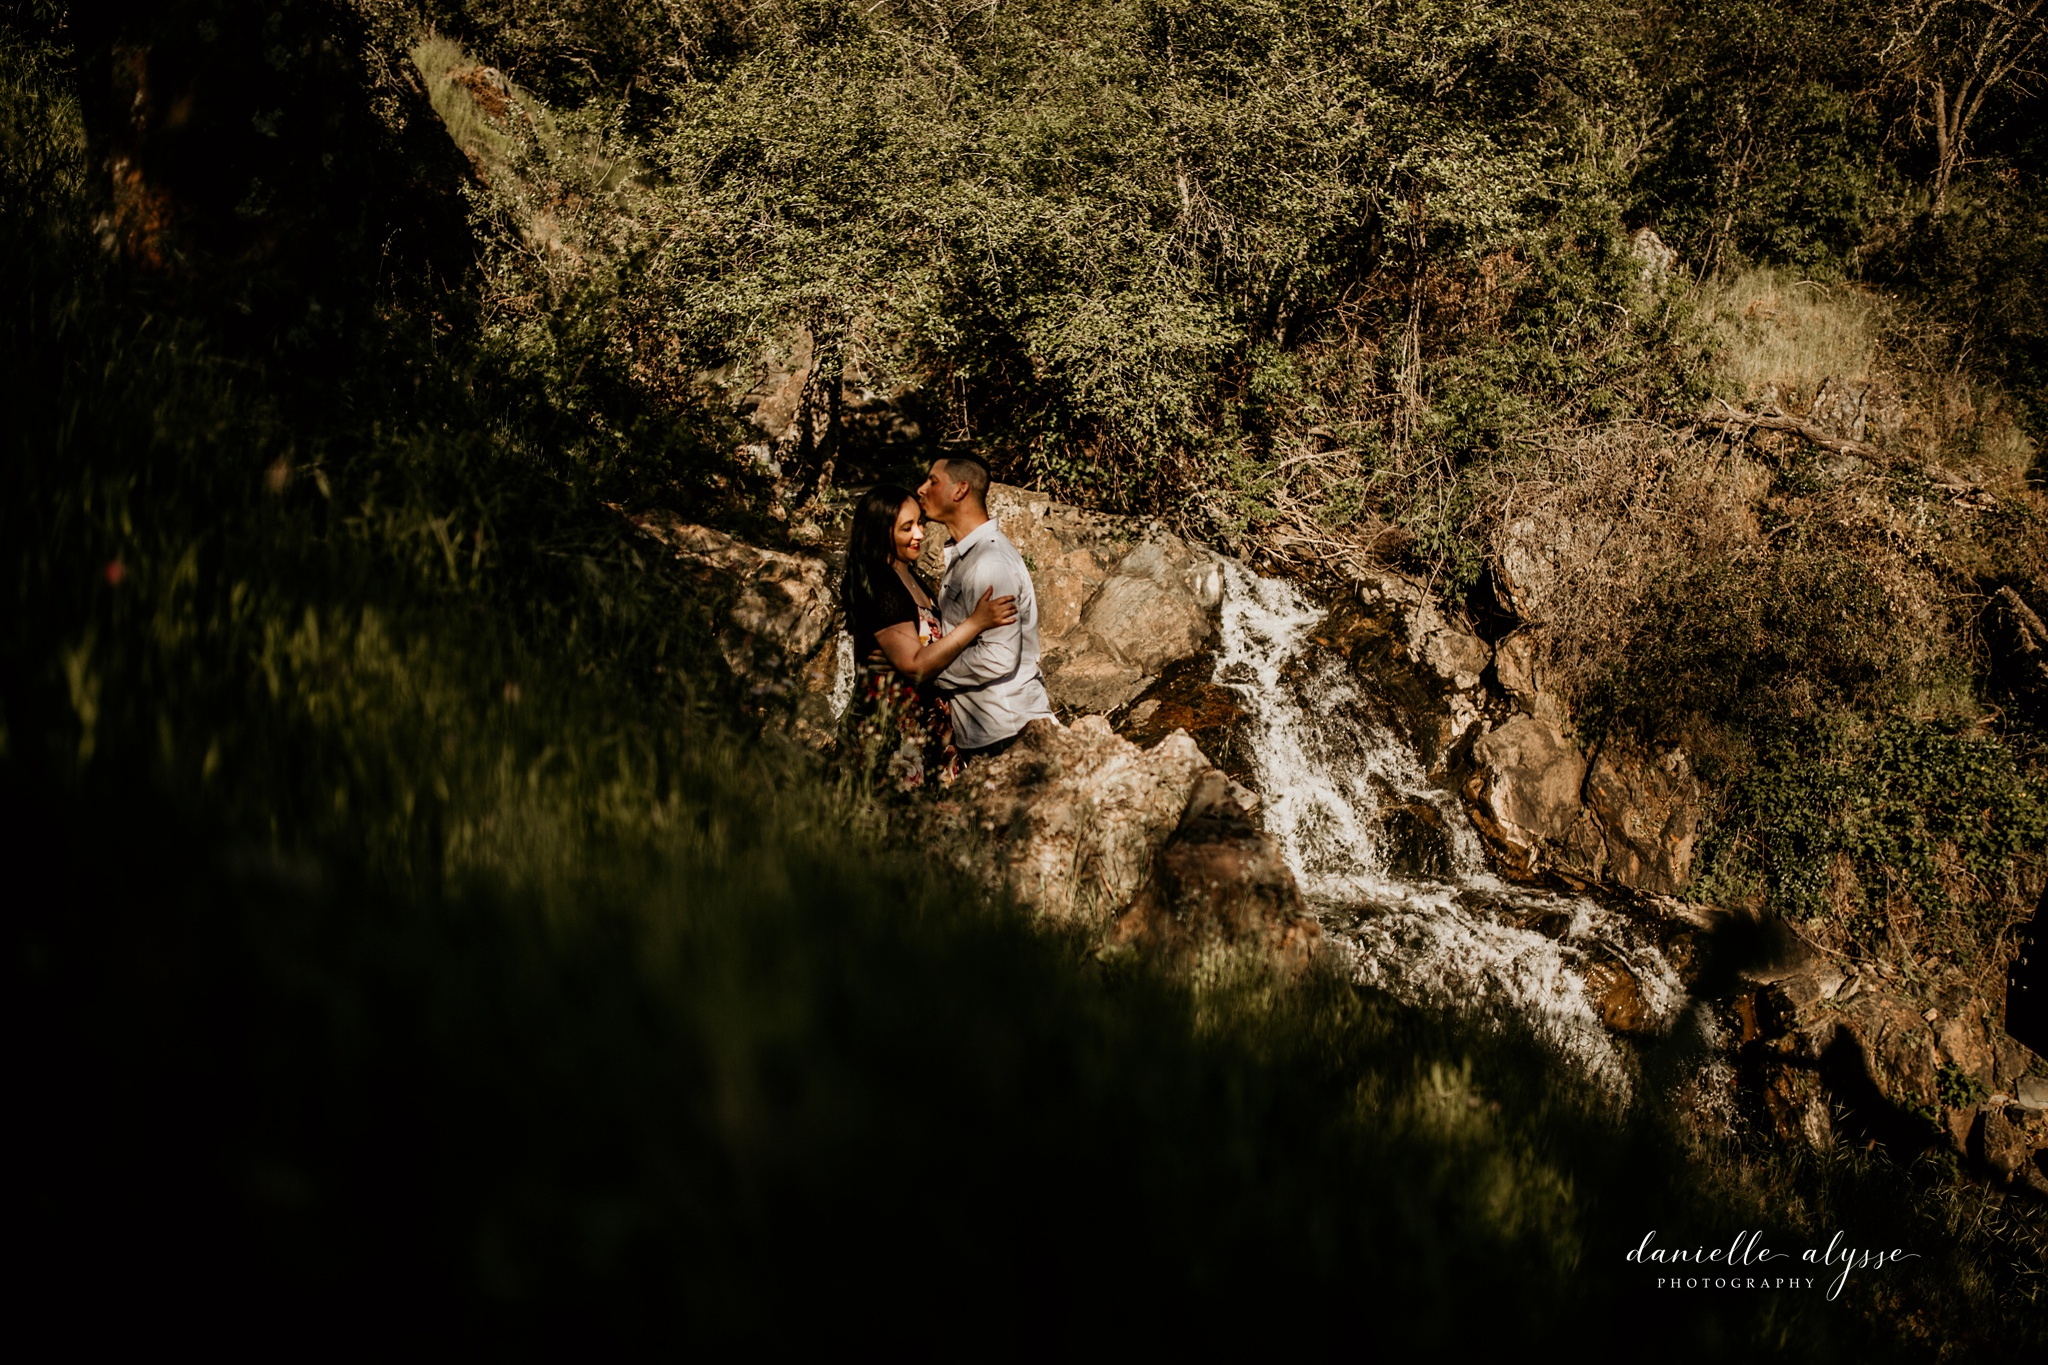 180425_engagement_monica_auburn_water_falls_auburn_danielle_alysse_photography_sacramento_photographer_blog_33_WEB.jpg